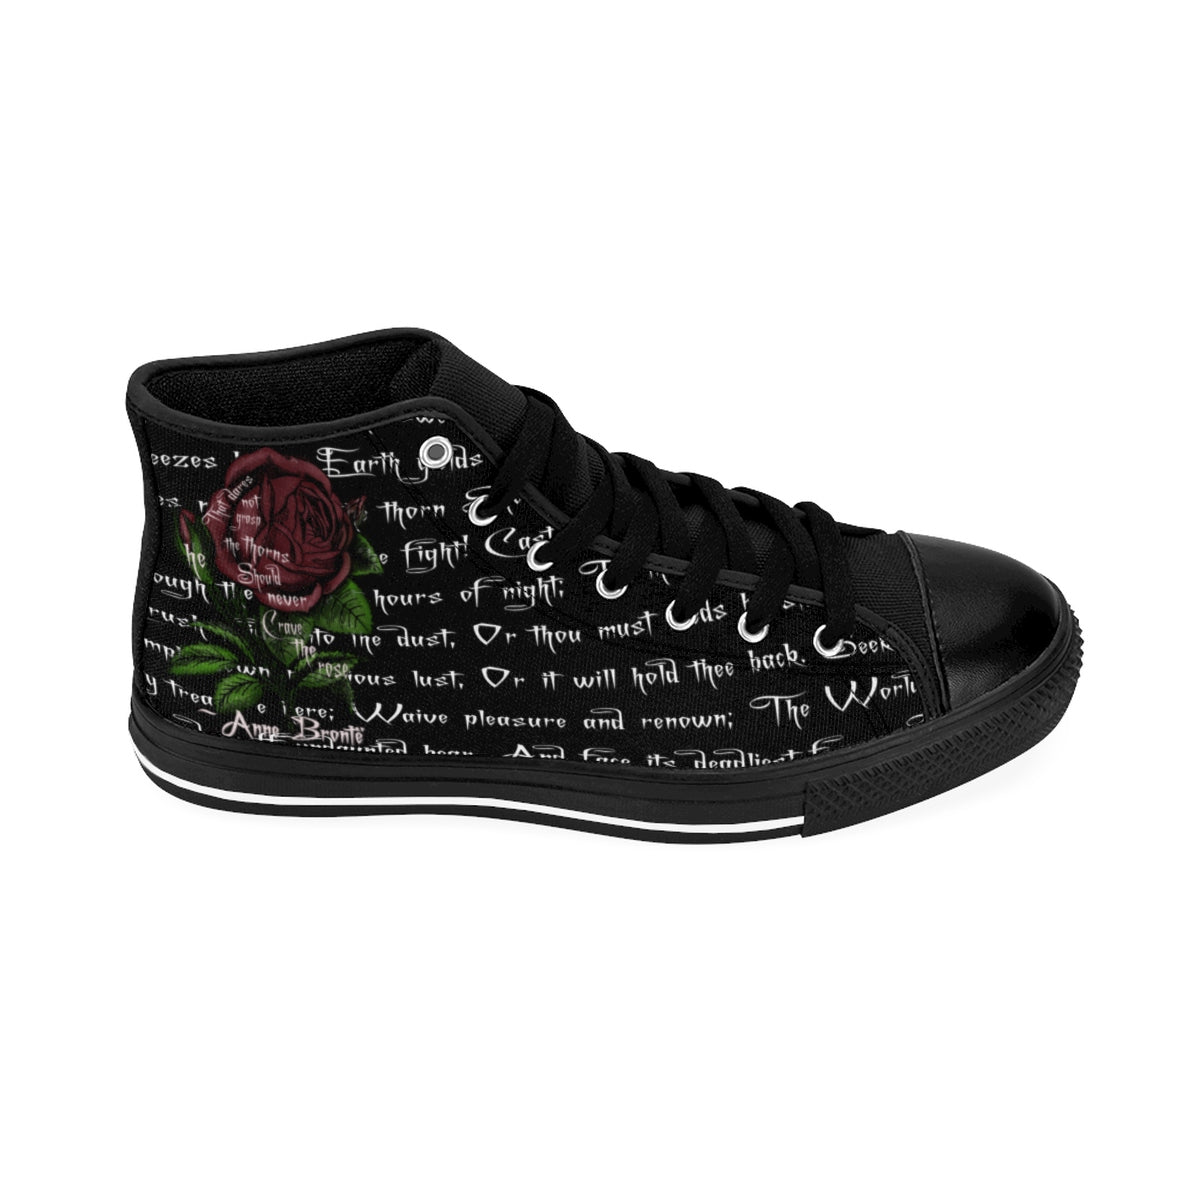 Grasp The Thorns Anne Brontë Women's Sneakers-Starry Meadows